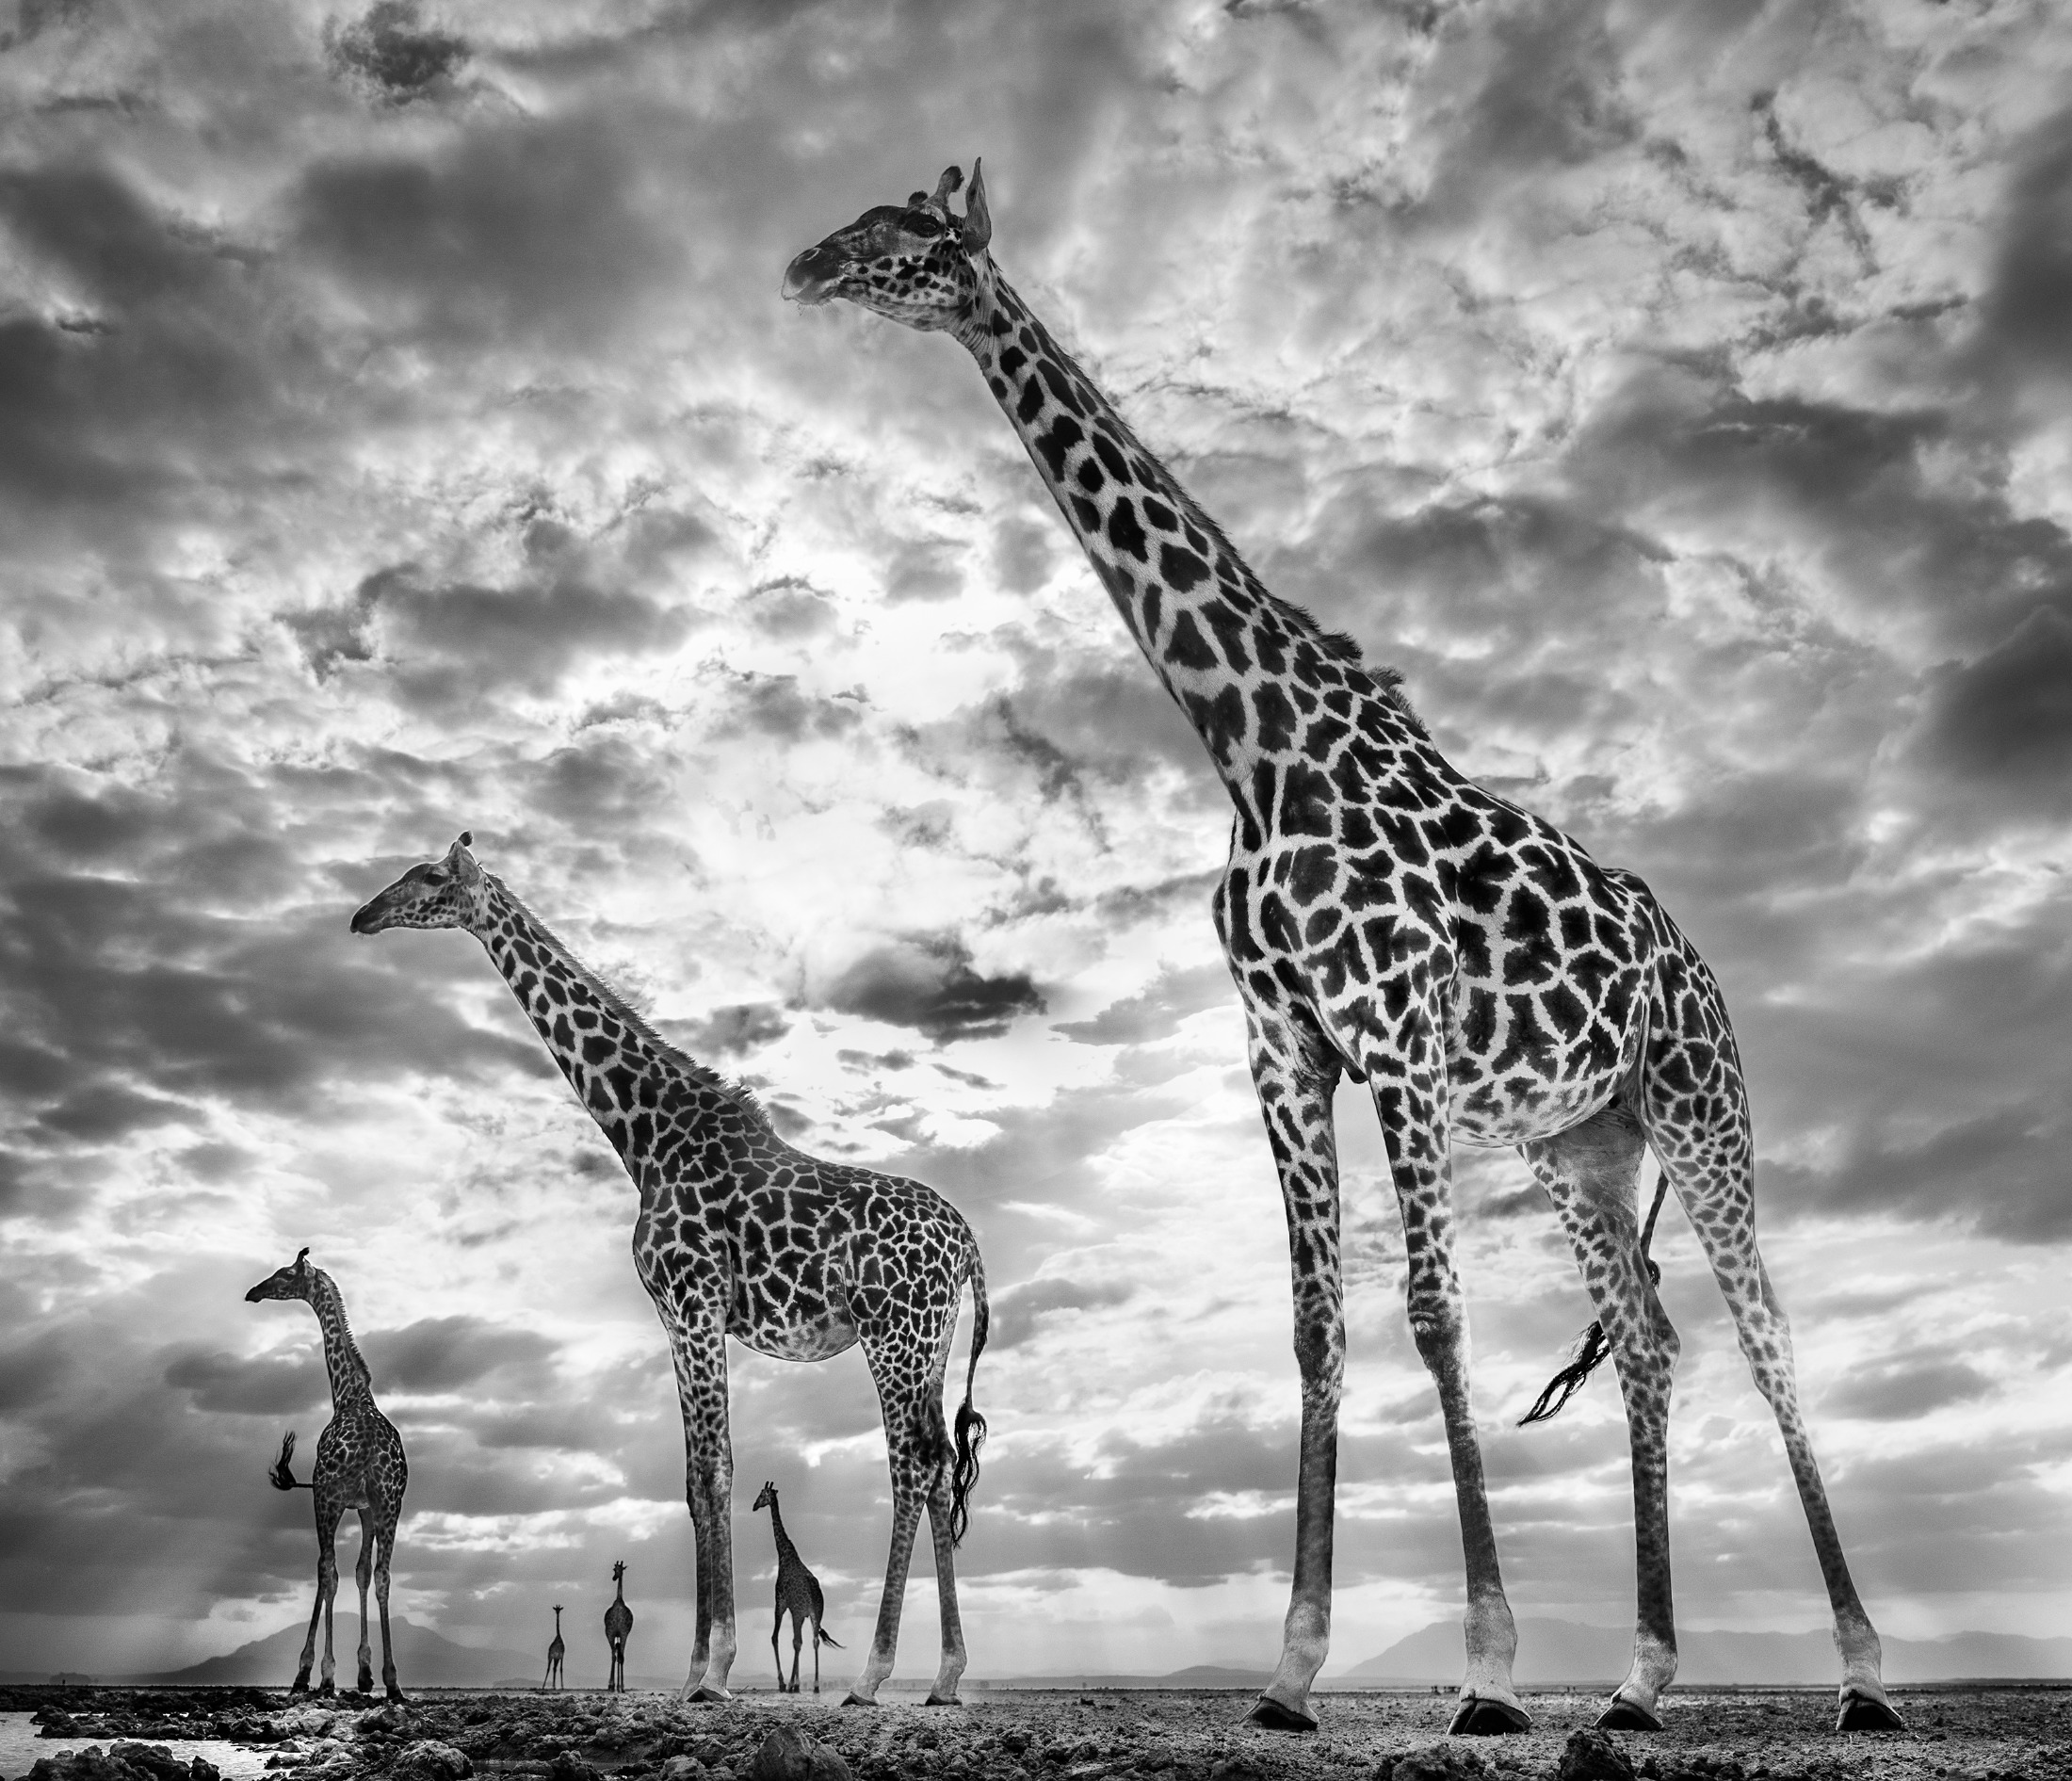 Keeping Up With the Crouches, 2019. Photography by David Yarrow. (Courtesy of Chali-Rosso Art Gallery)